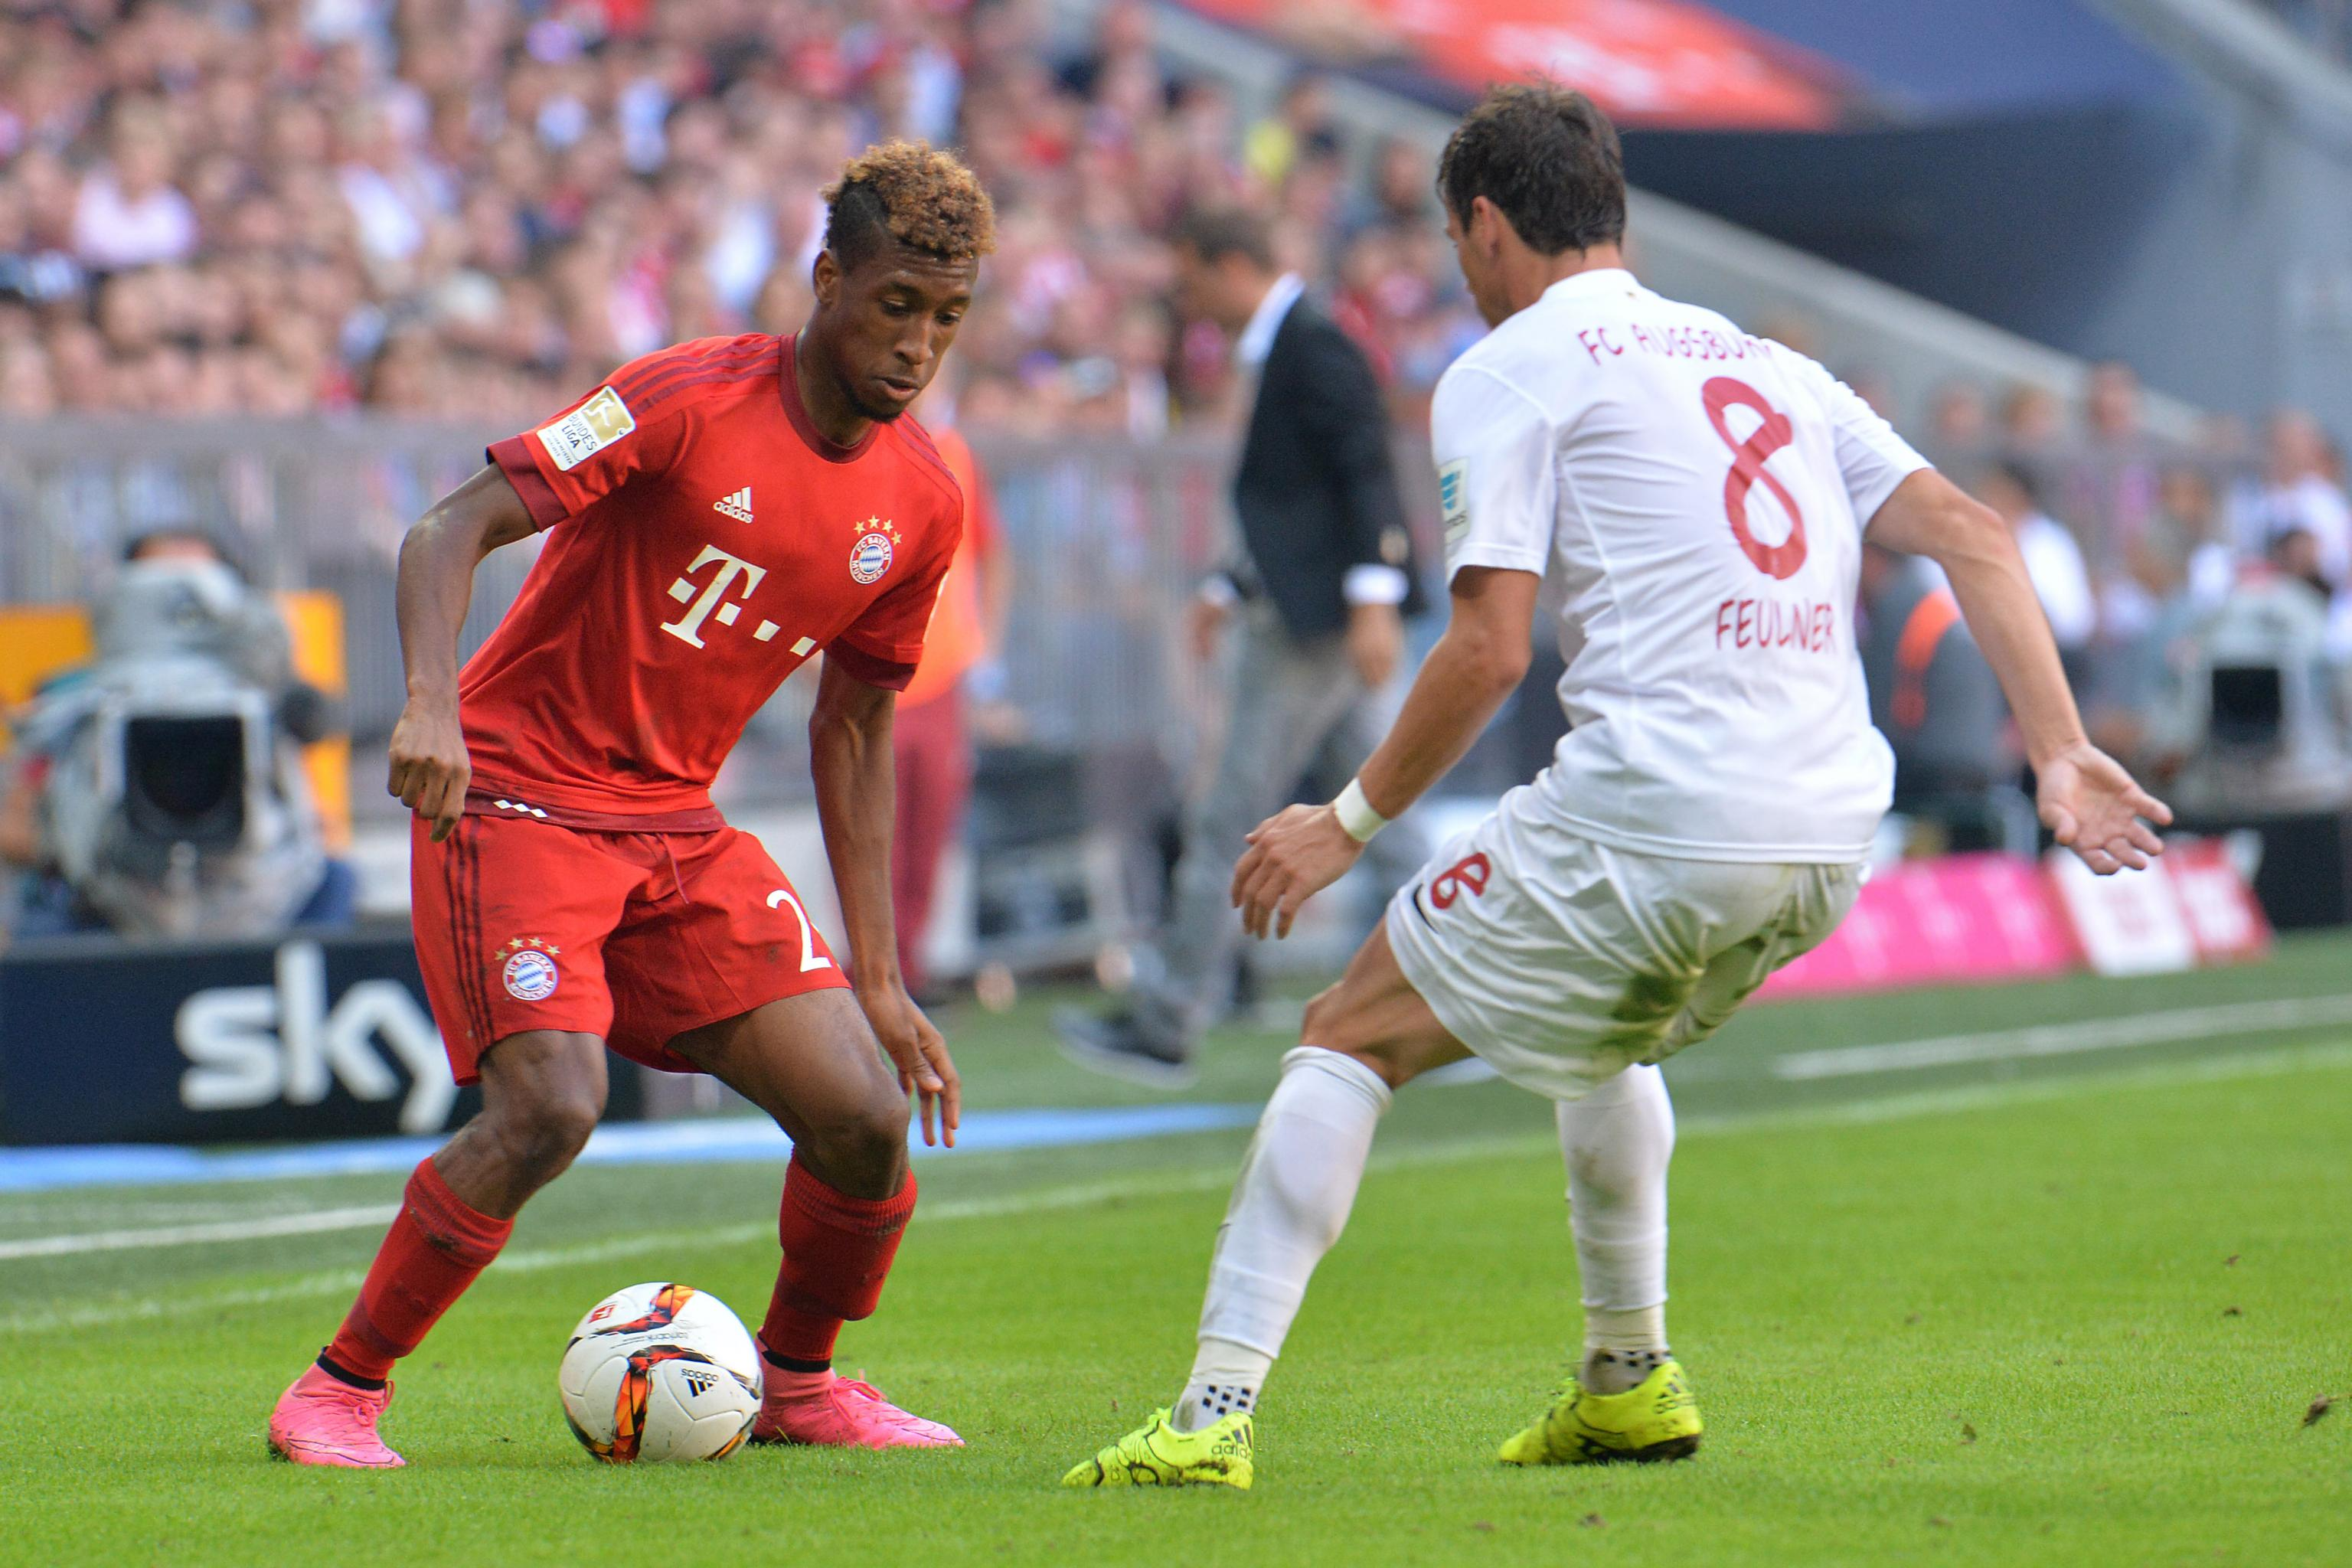 Fc Augsburg Vs Bayern Munich Team News Predicted Lineups Live Stream Tv Info Bleacher Report Latest News Videos And Highlights